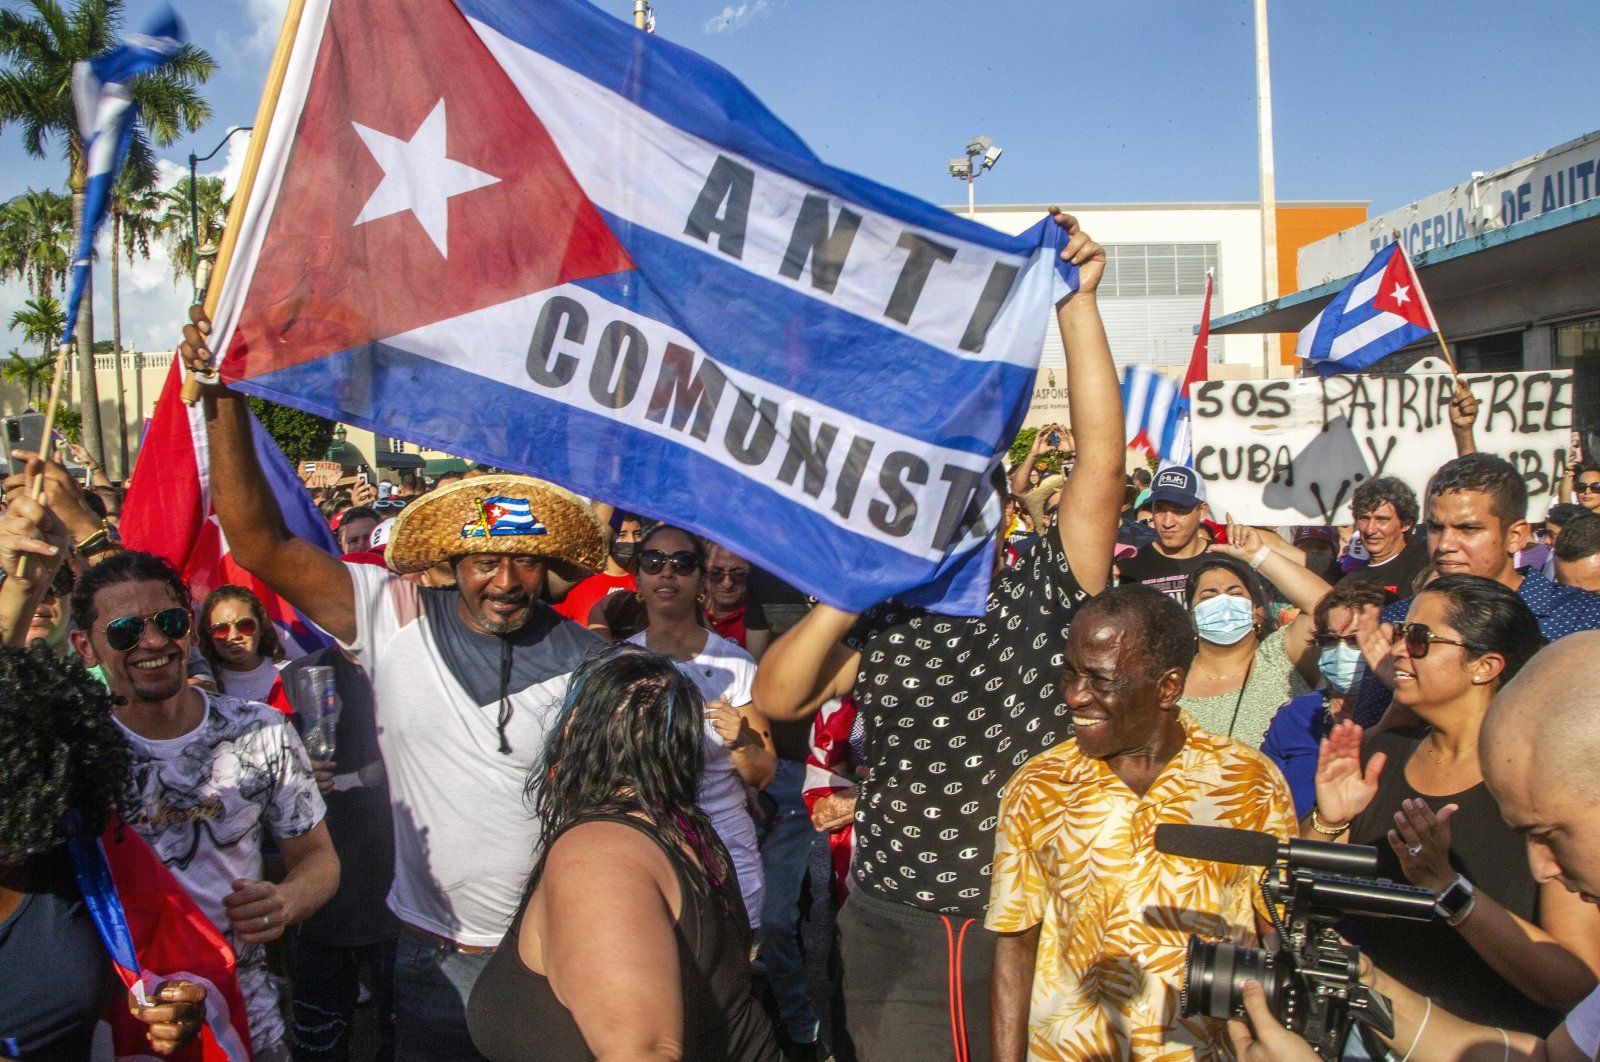 Cuban exiles rally at Versailles restaurant in Miami's Little Havana in support of protesters in Cuba as thousands of Cubans took to the streets in rare protests, Miami, Florida, U.S., Sunday, July 11, 2021. (AP Photo)